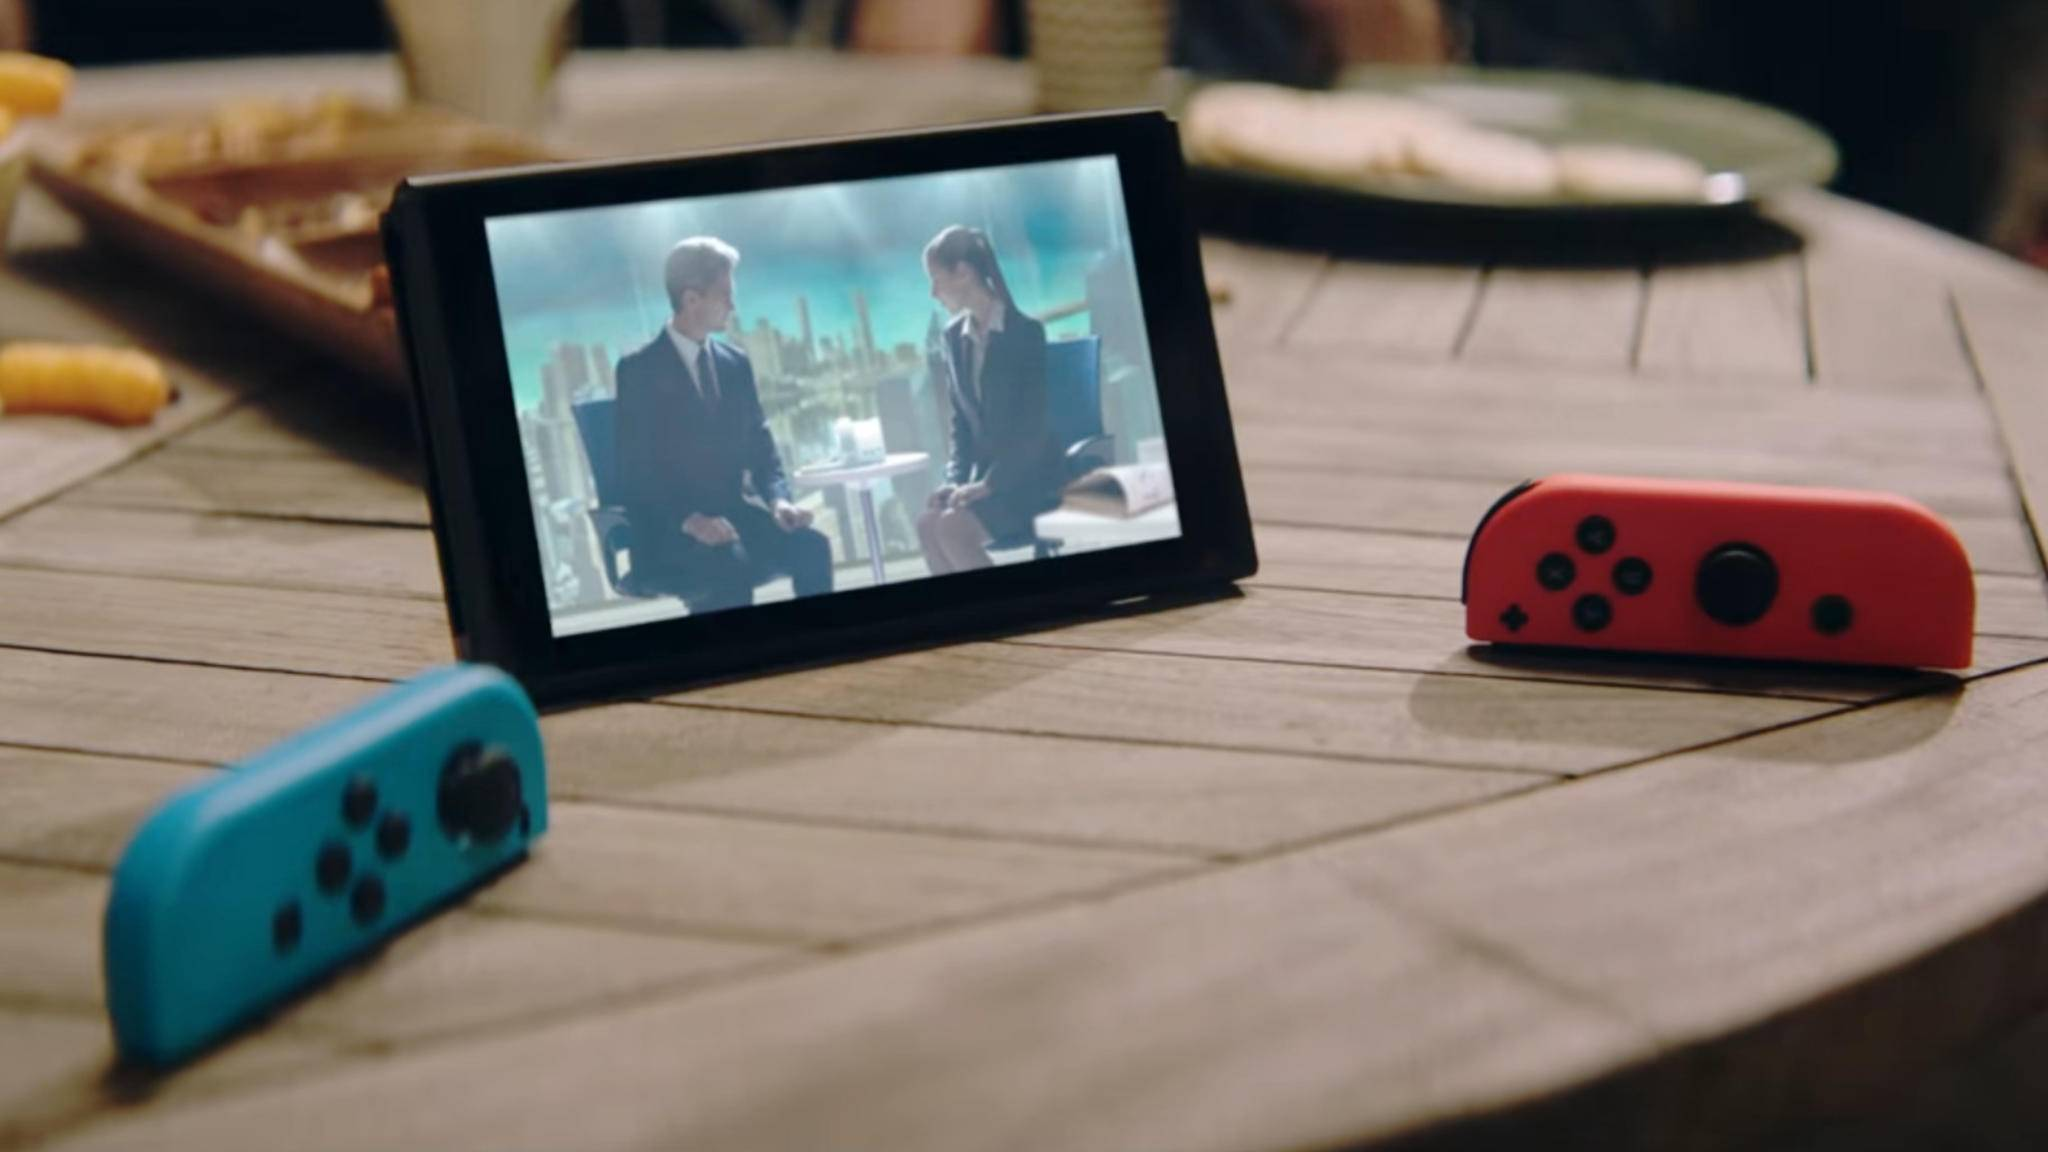 Bald an Bord: Video-Streaming-Apps für die Nintendo Switch.